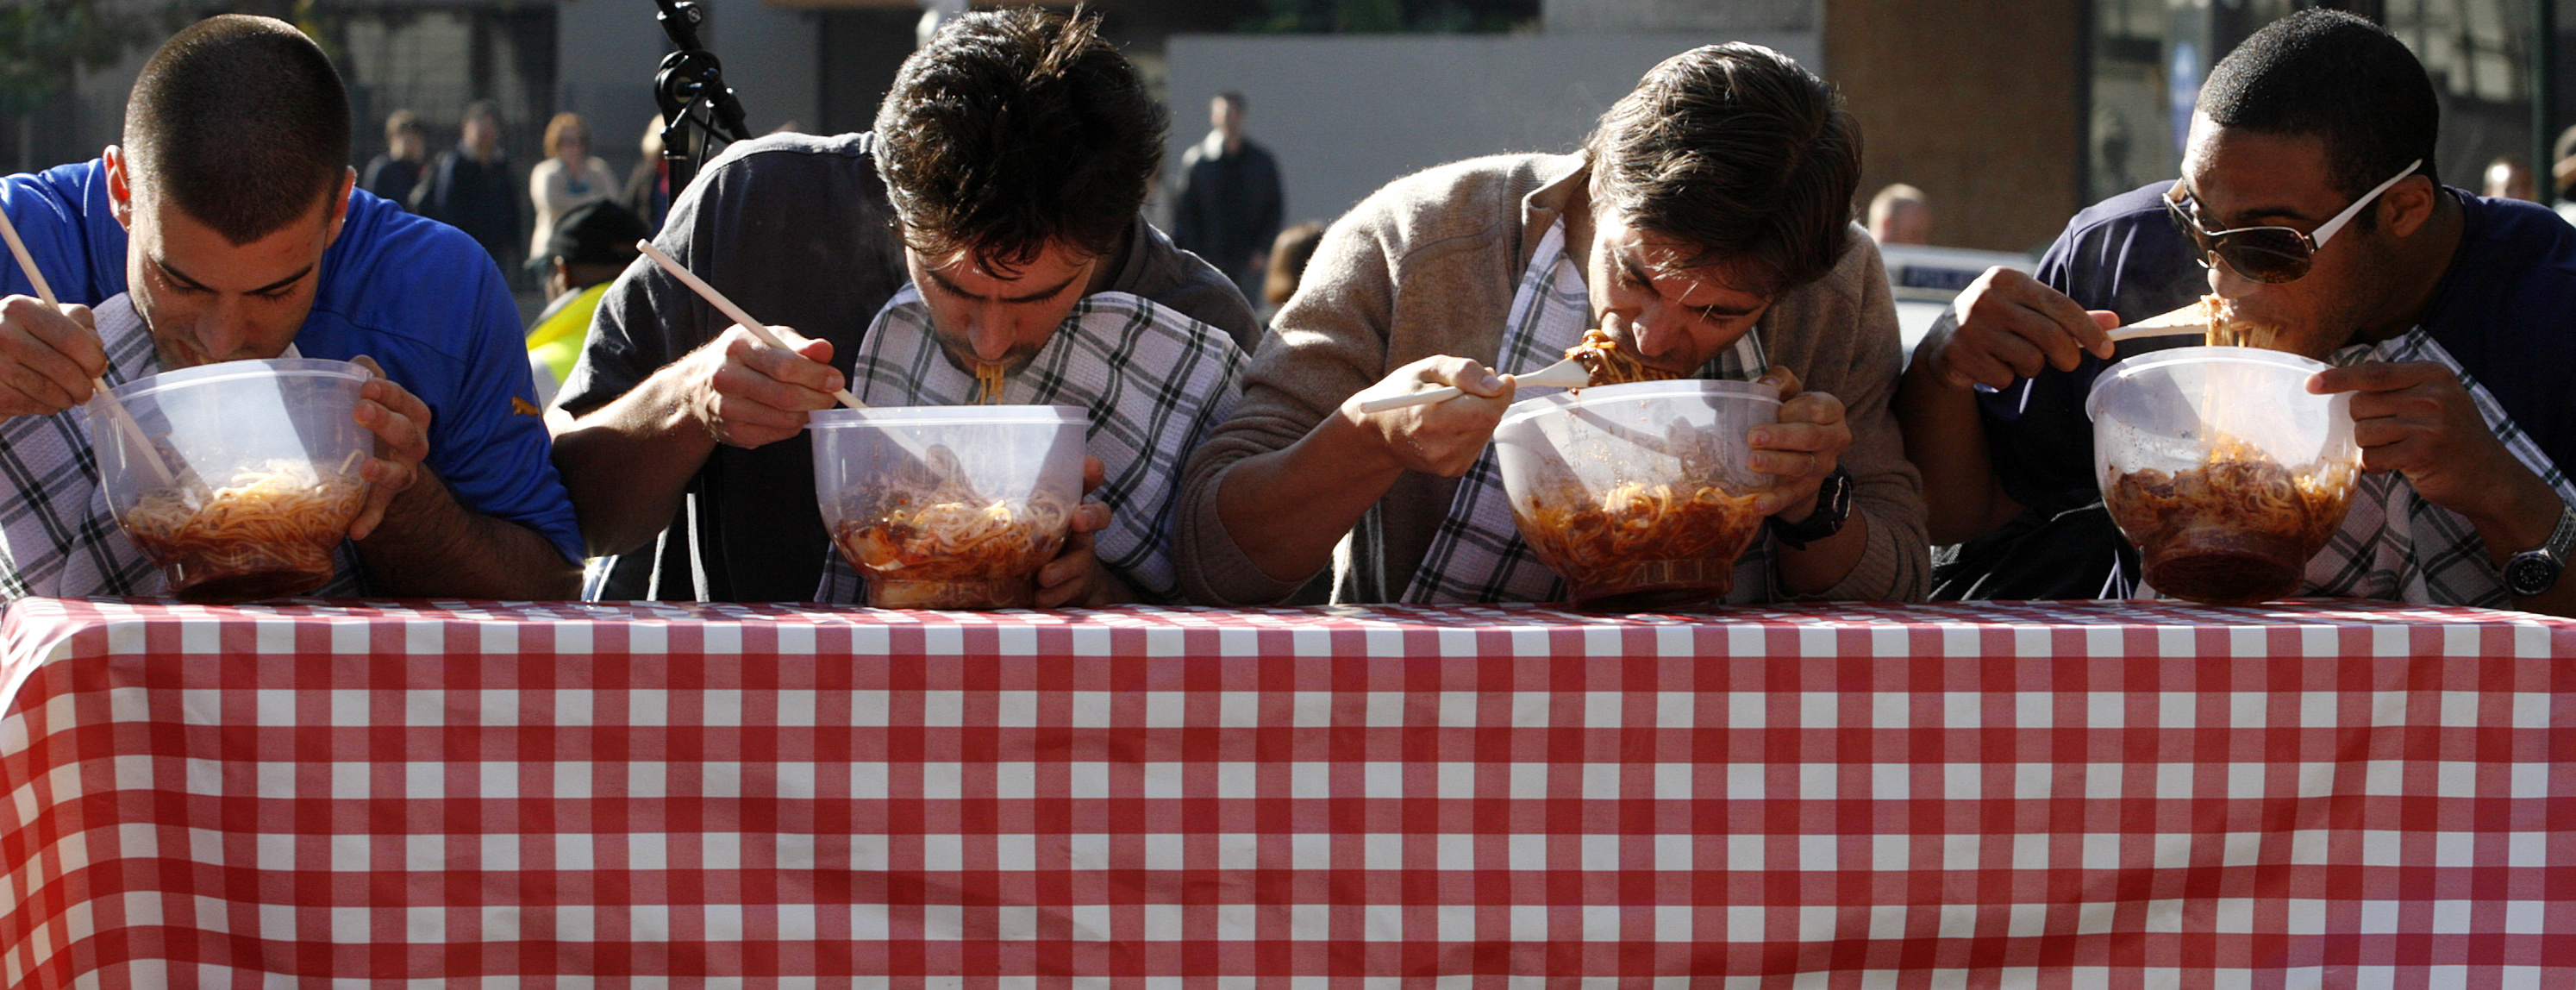 People participate in a spaghetti eating competition at the Sydney Italian Festival May 25, 2008. The festival, which coincides with celebrations for Italian National Day on June 2, runs till June 10.   REUTERS/Daniel Munoz   (AUSTRALIA) - RTX651W